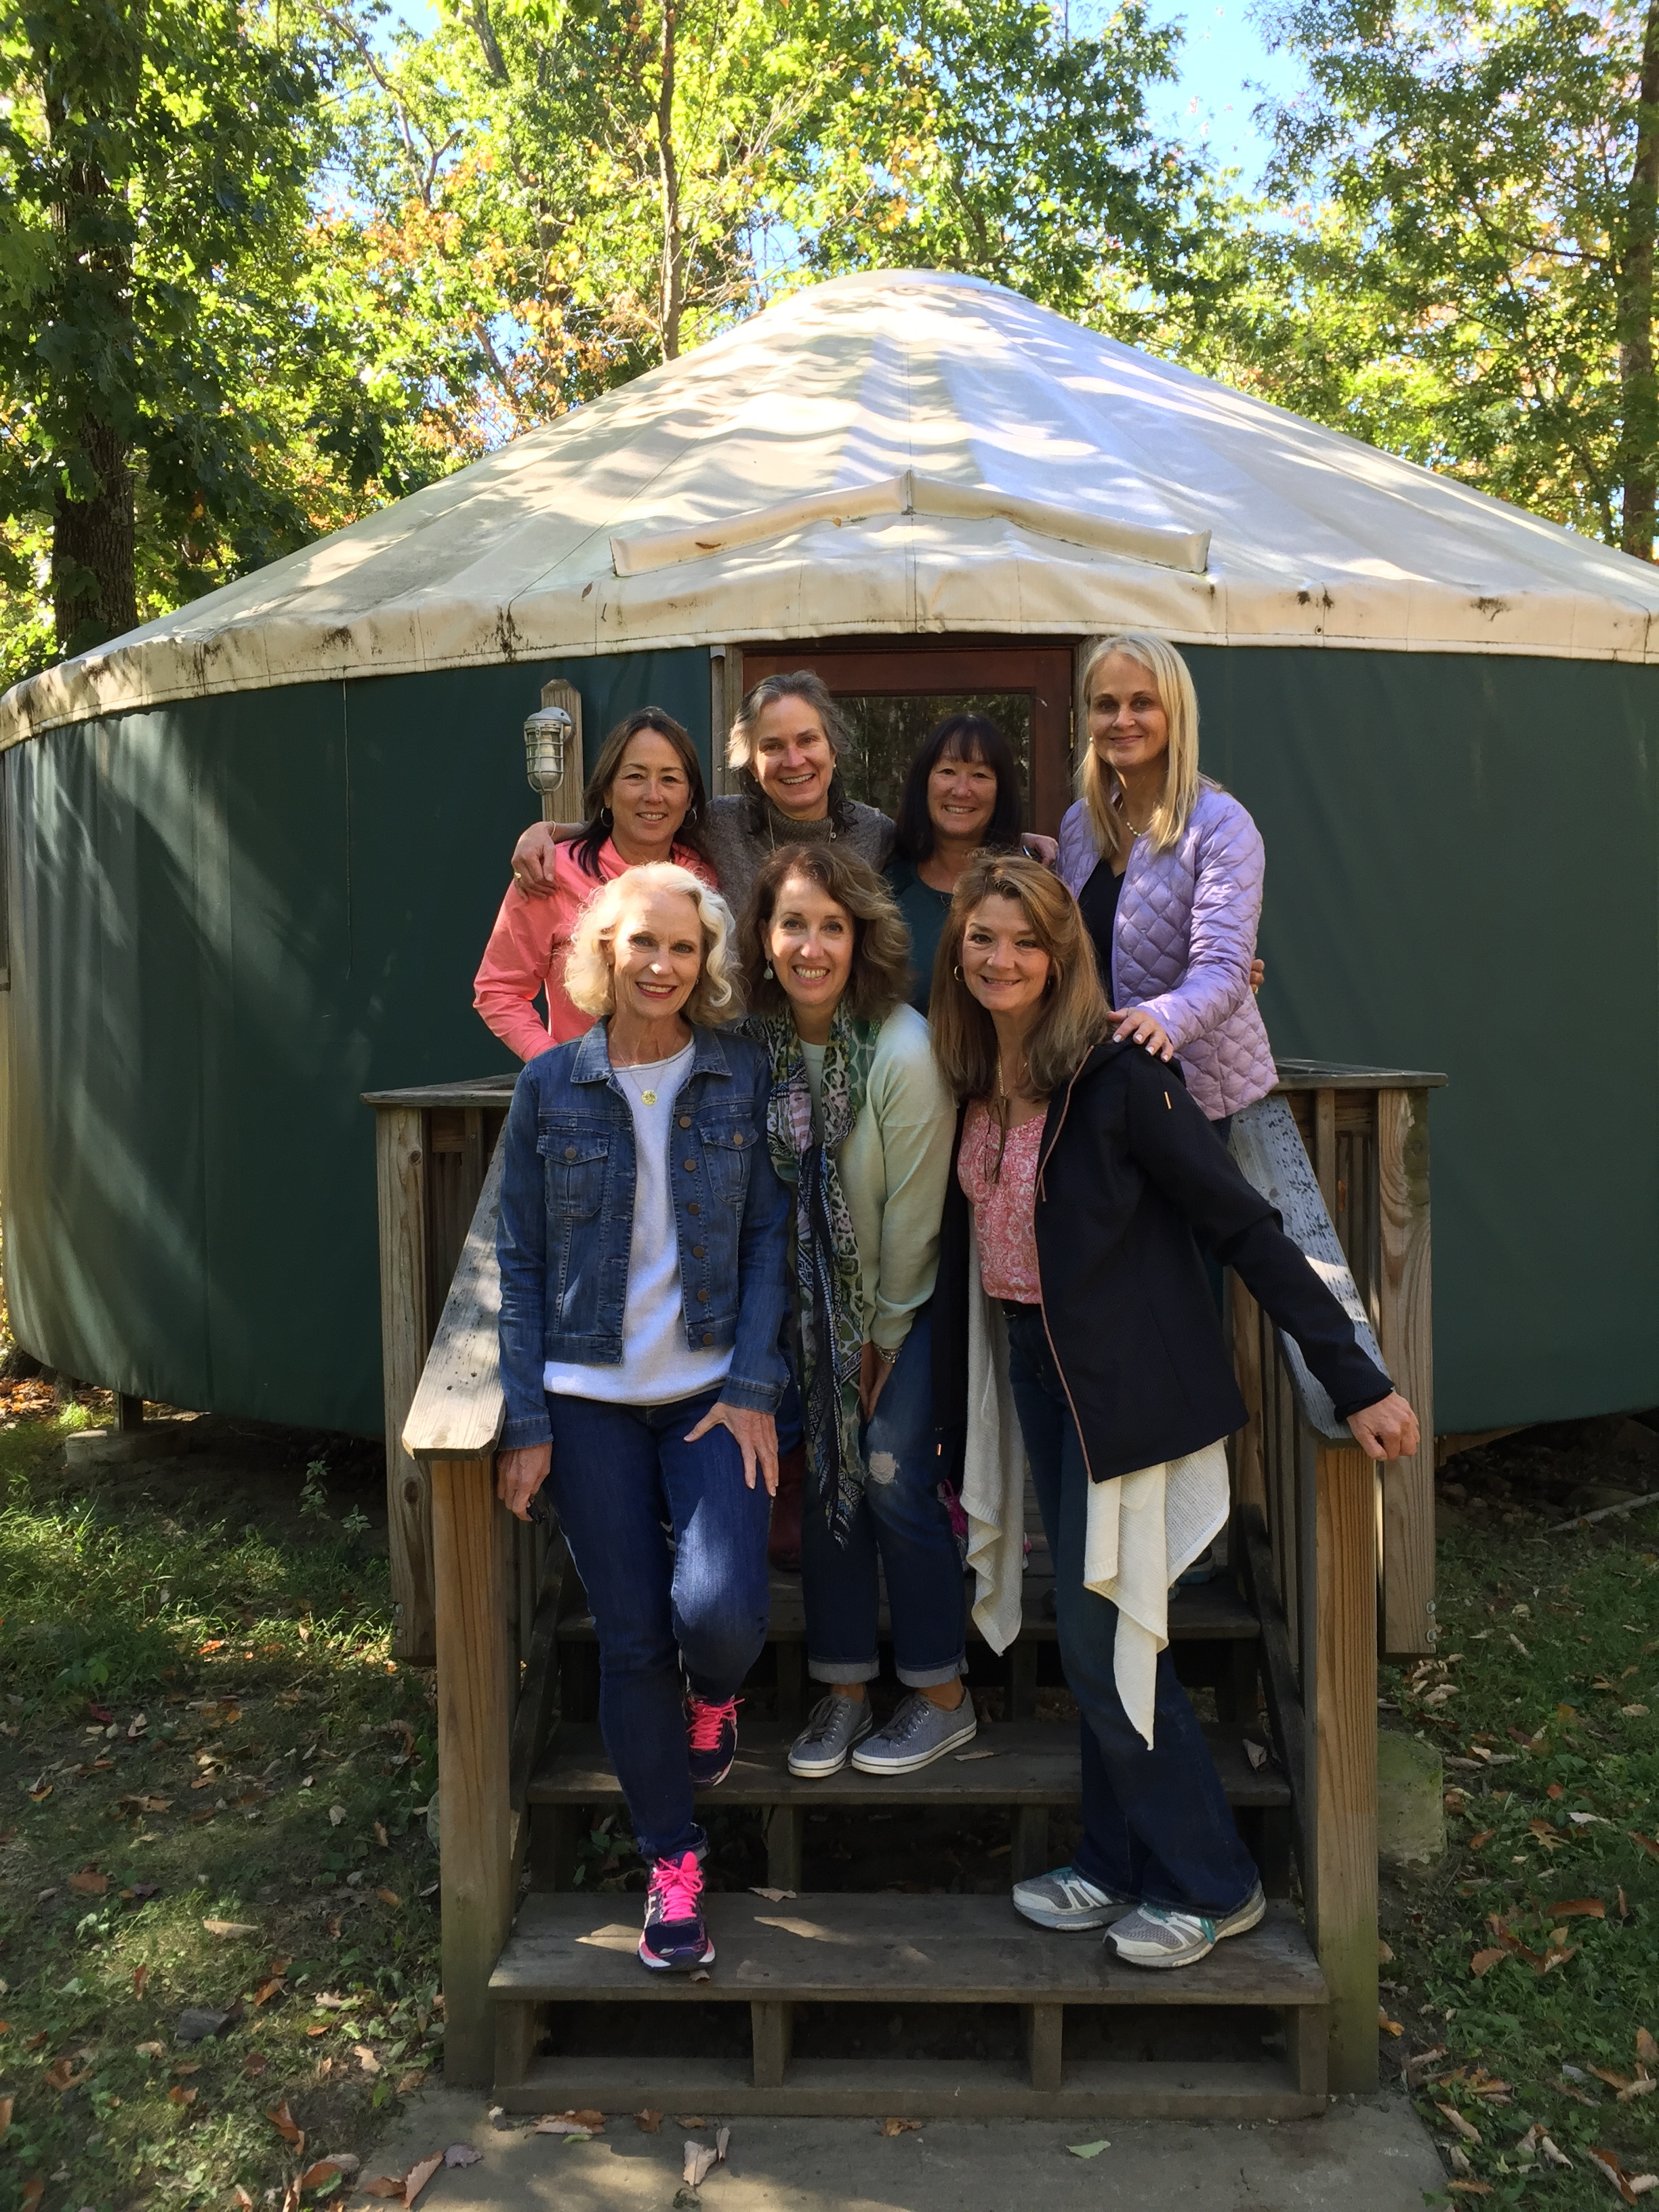 My great yurt mates!!! Back row - Nancy W., Nancy H., Bette, Linda. Front - me, Cindy and Marysue.